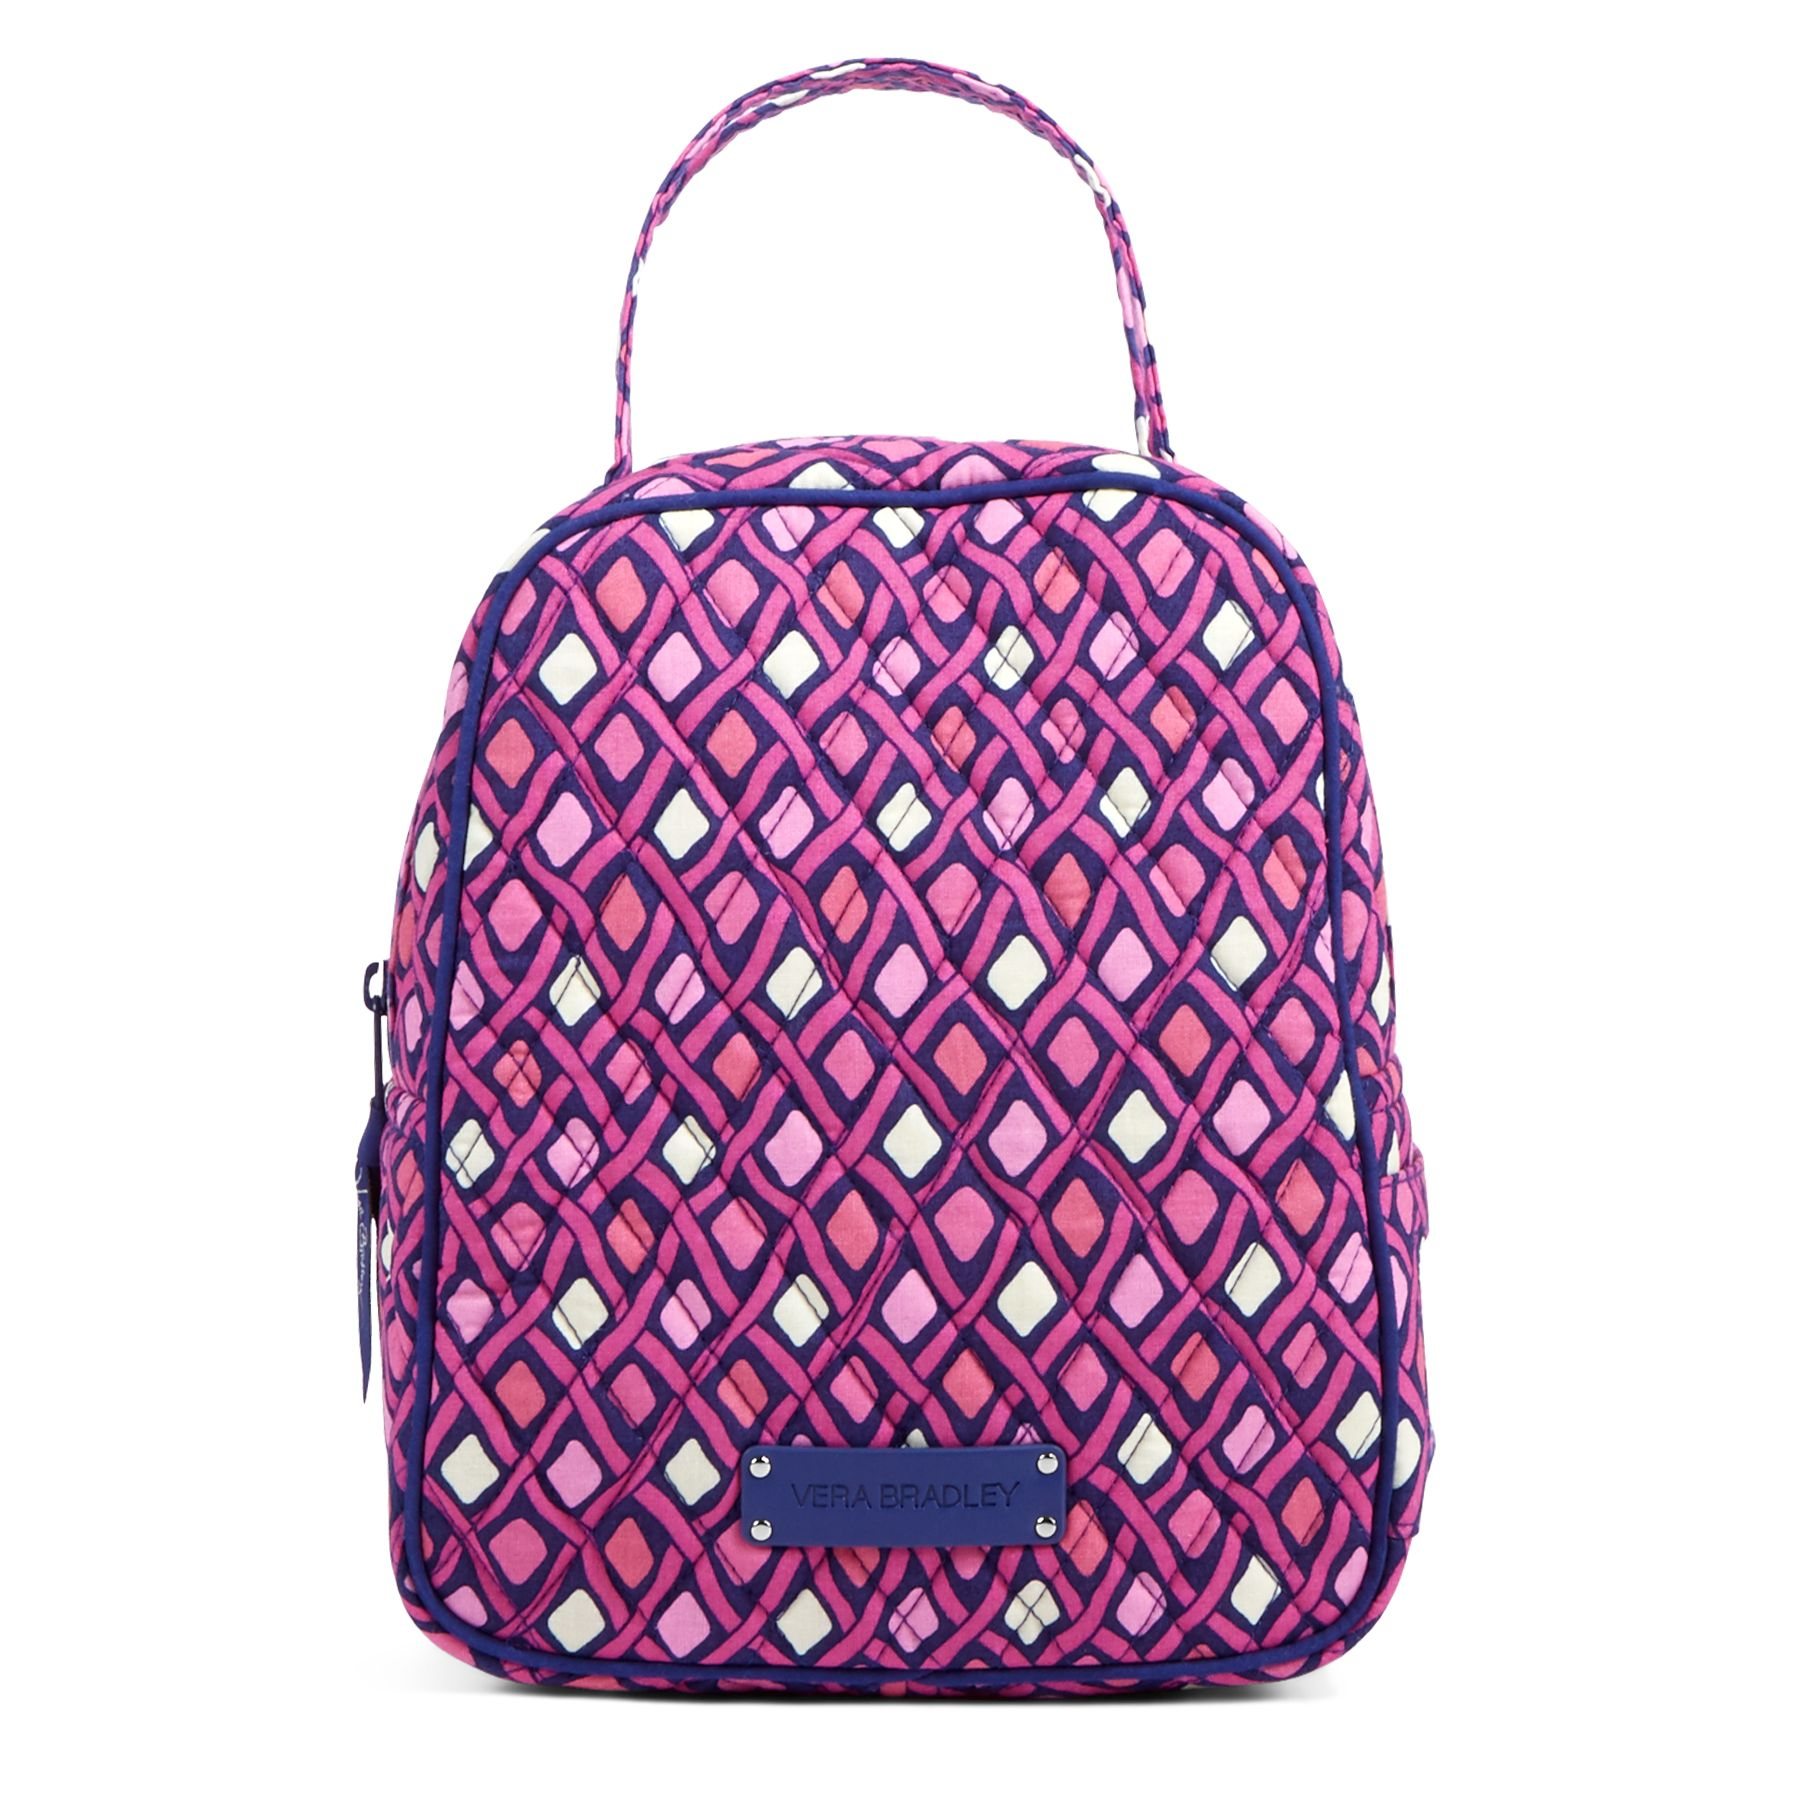 32dc1a079d Vera Bradley Lunch Bunch in Lucky Dots. EAN-13 Barcode of UPC 886003311561  · 886003311561